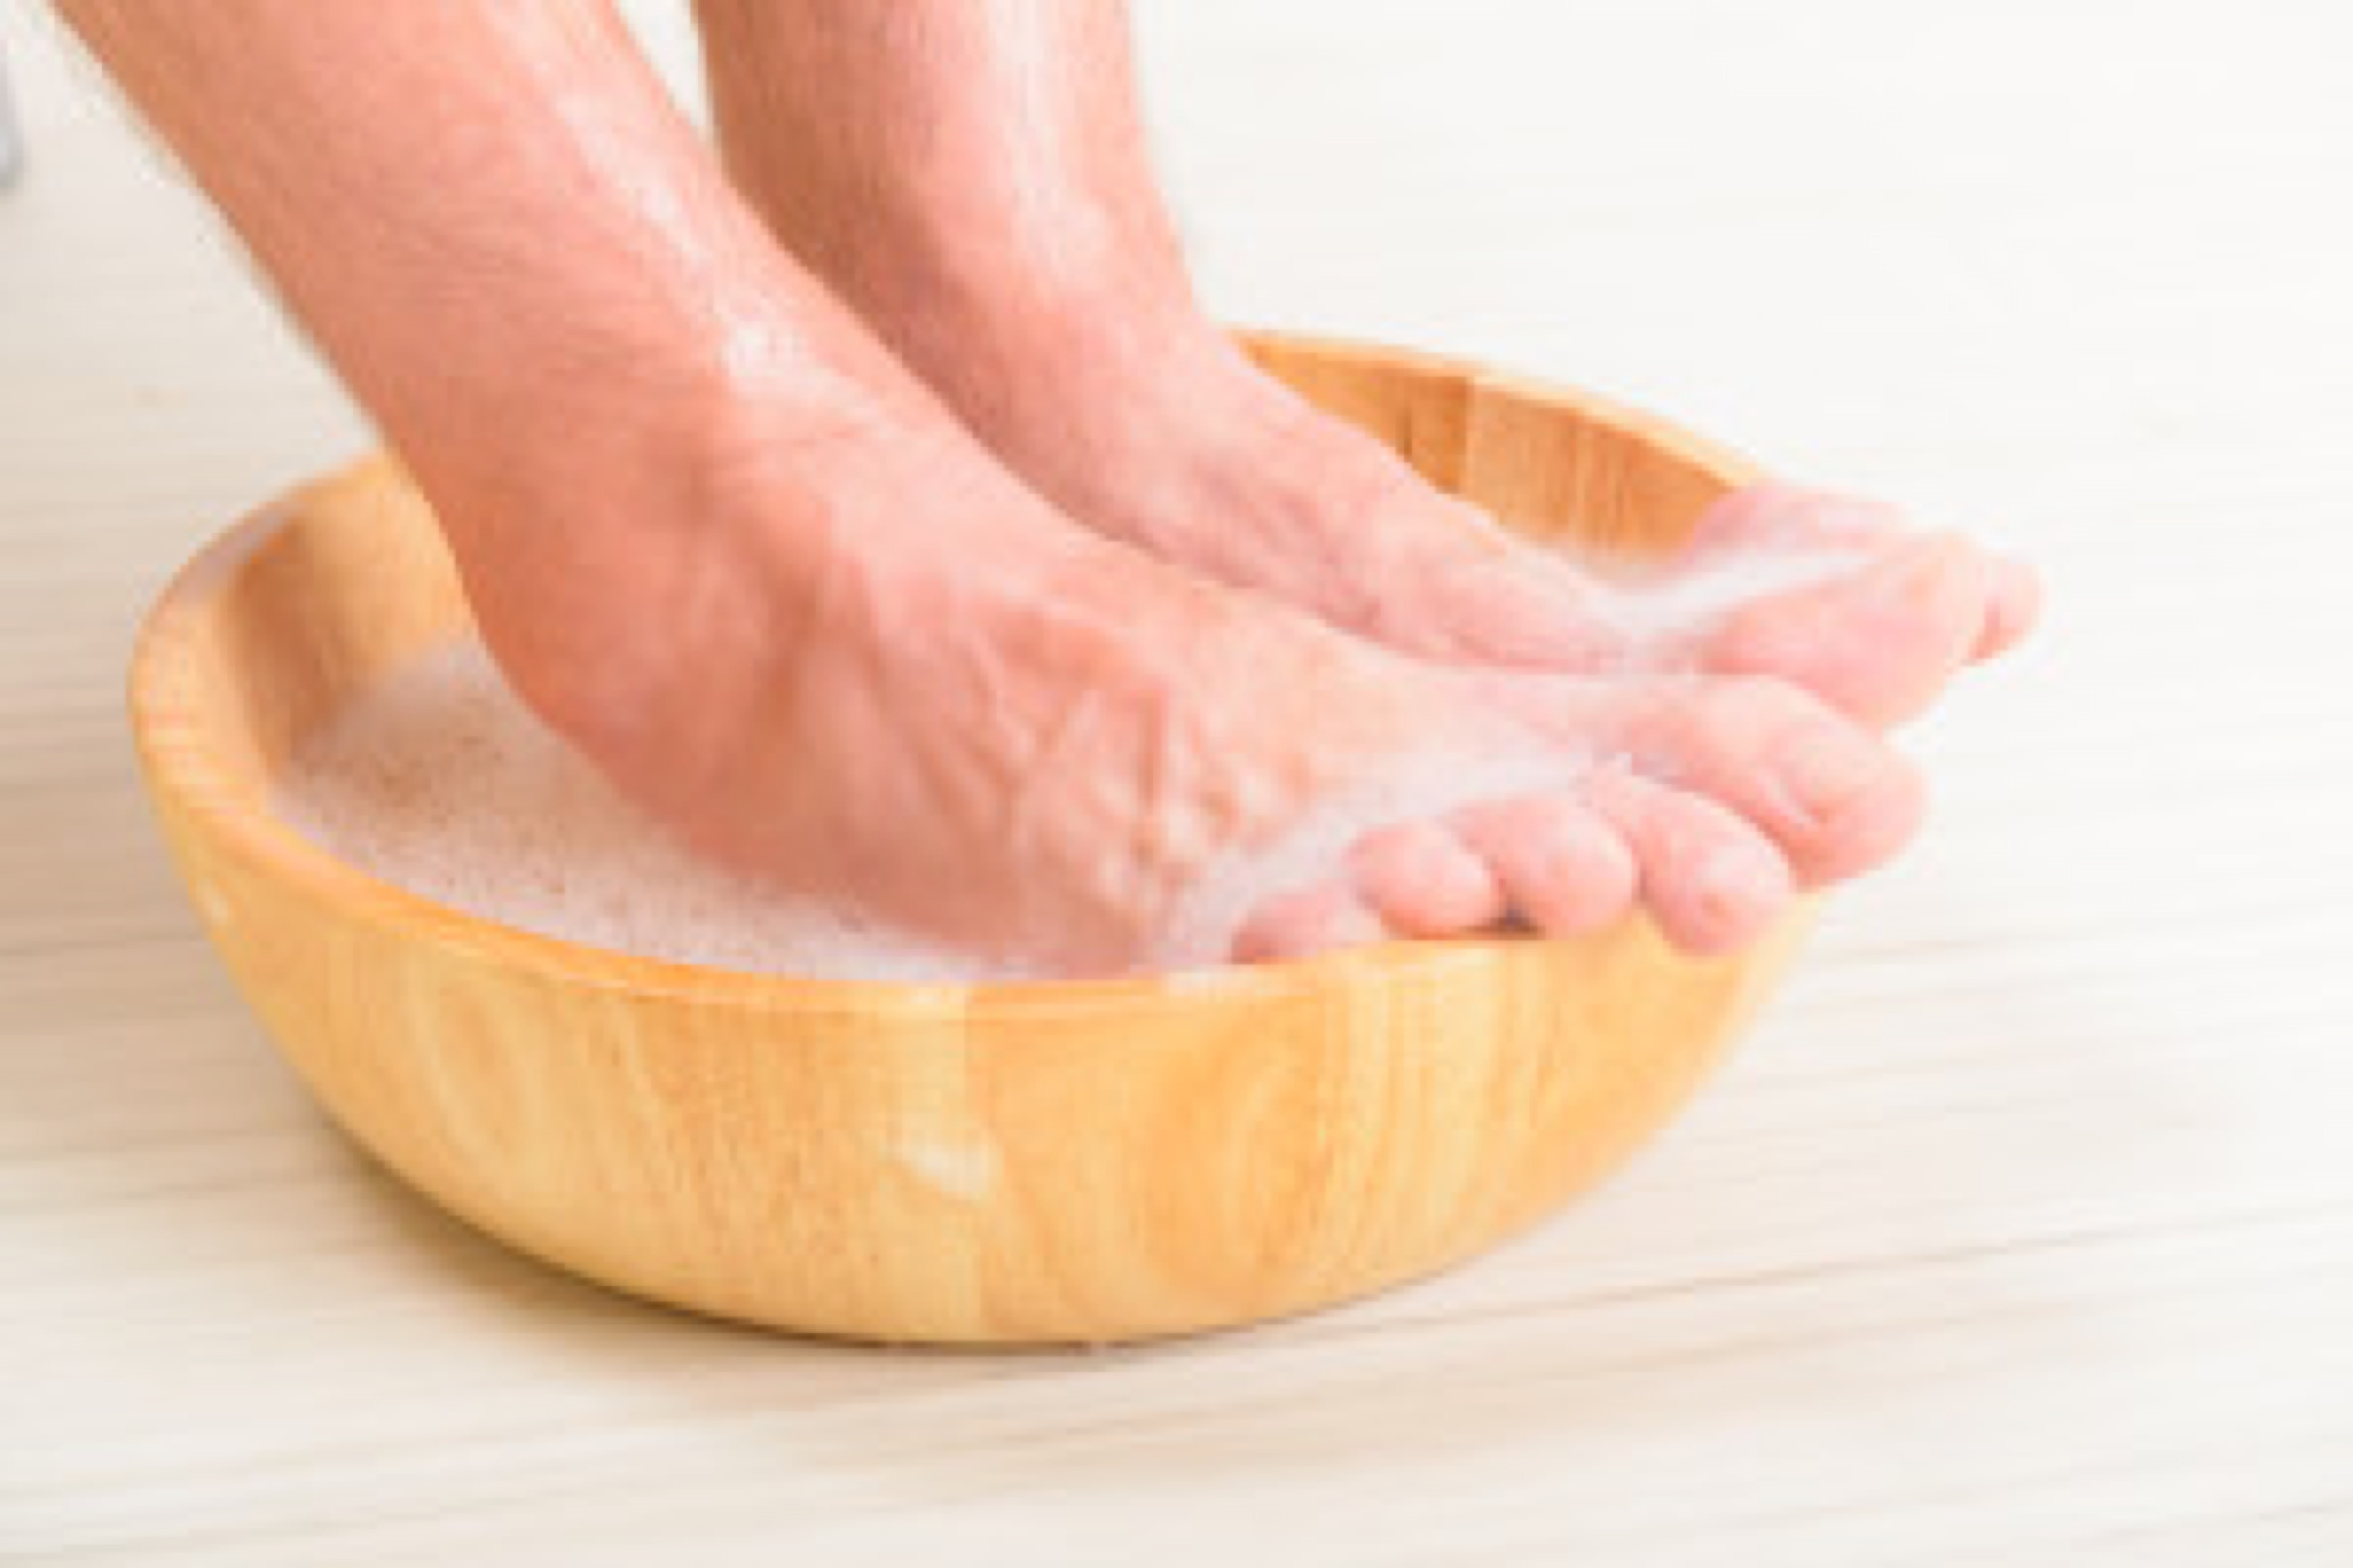 Male feet in a bowl with water and soap, hygiene and spa concept